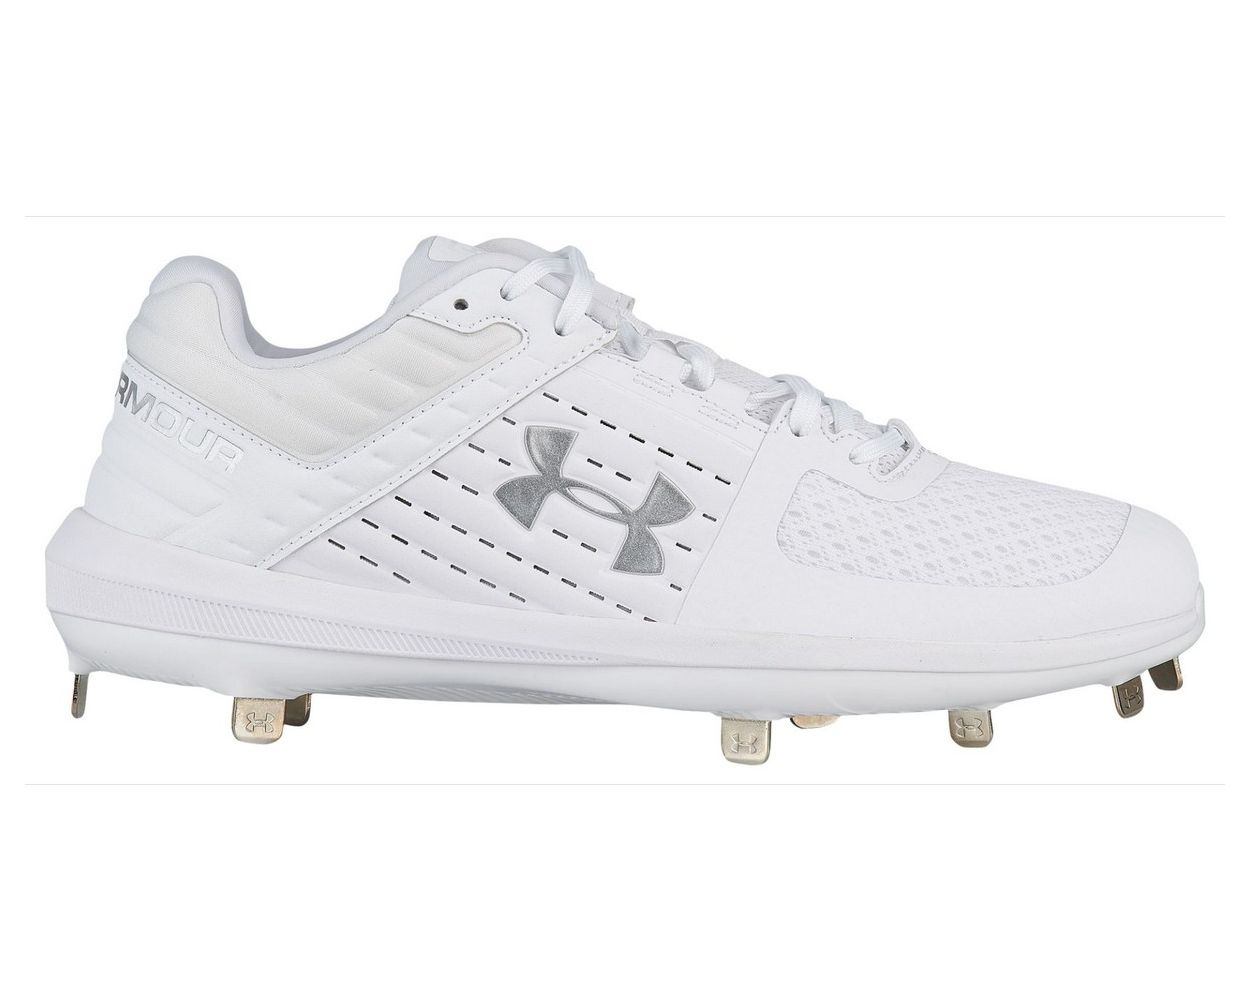 Under Armour Yard Low ST White/White